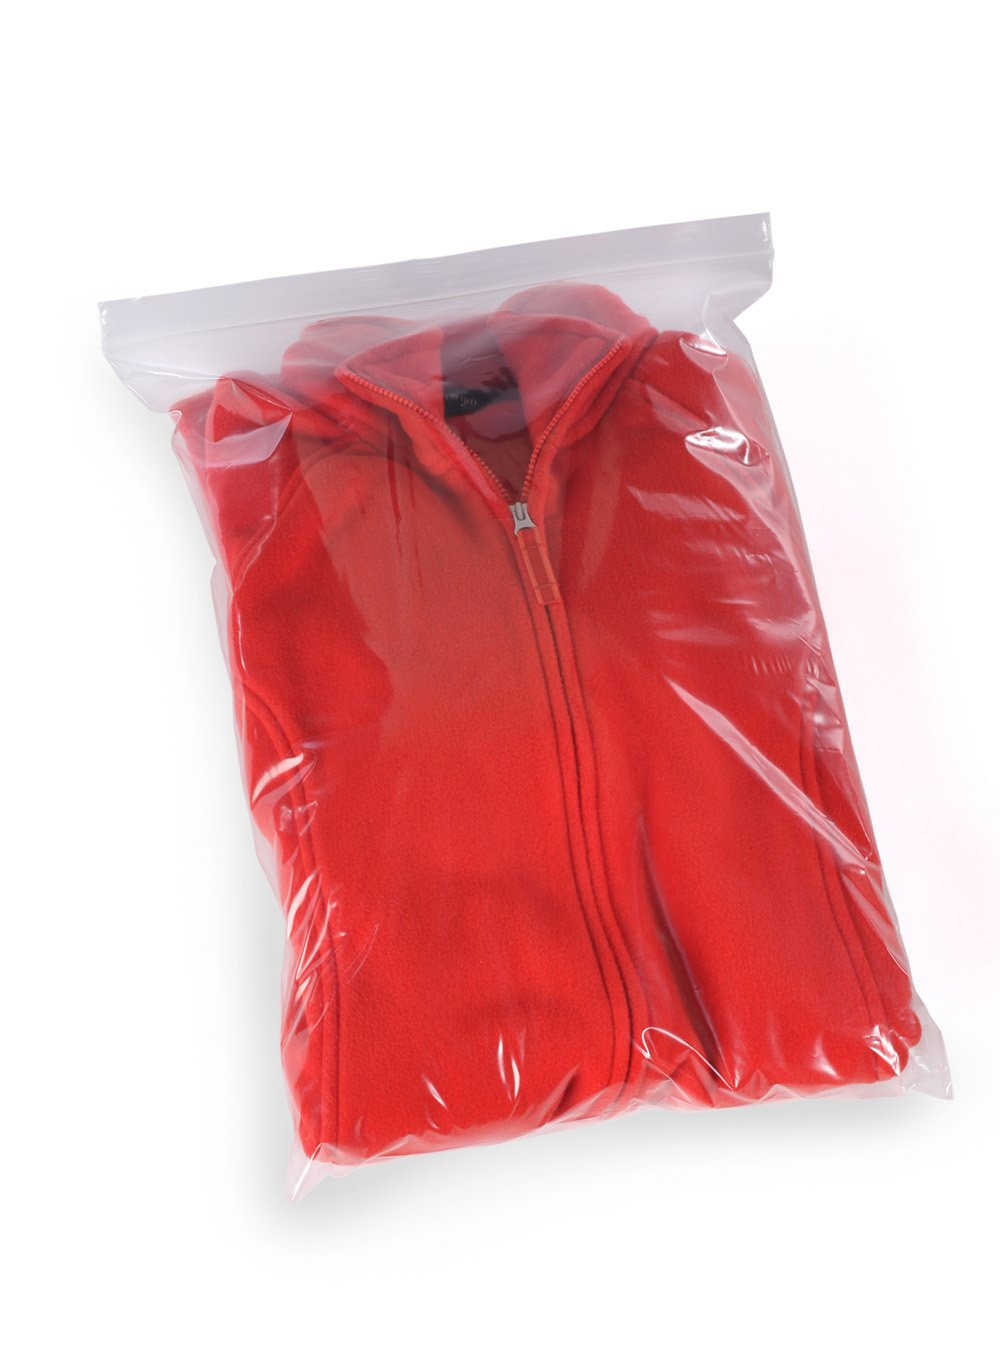 18'' x 24'' x 2 mil Clear Plastic Reclosable Bags with Zip Top (Case of 500)